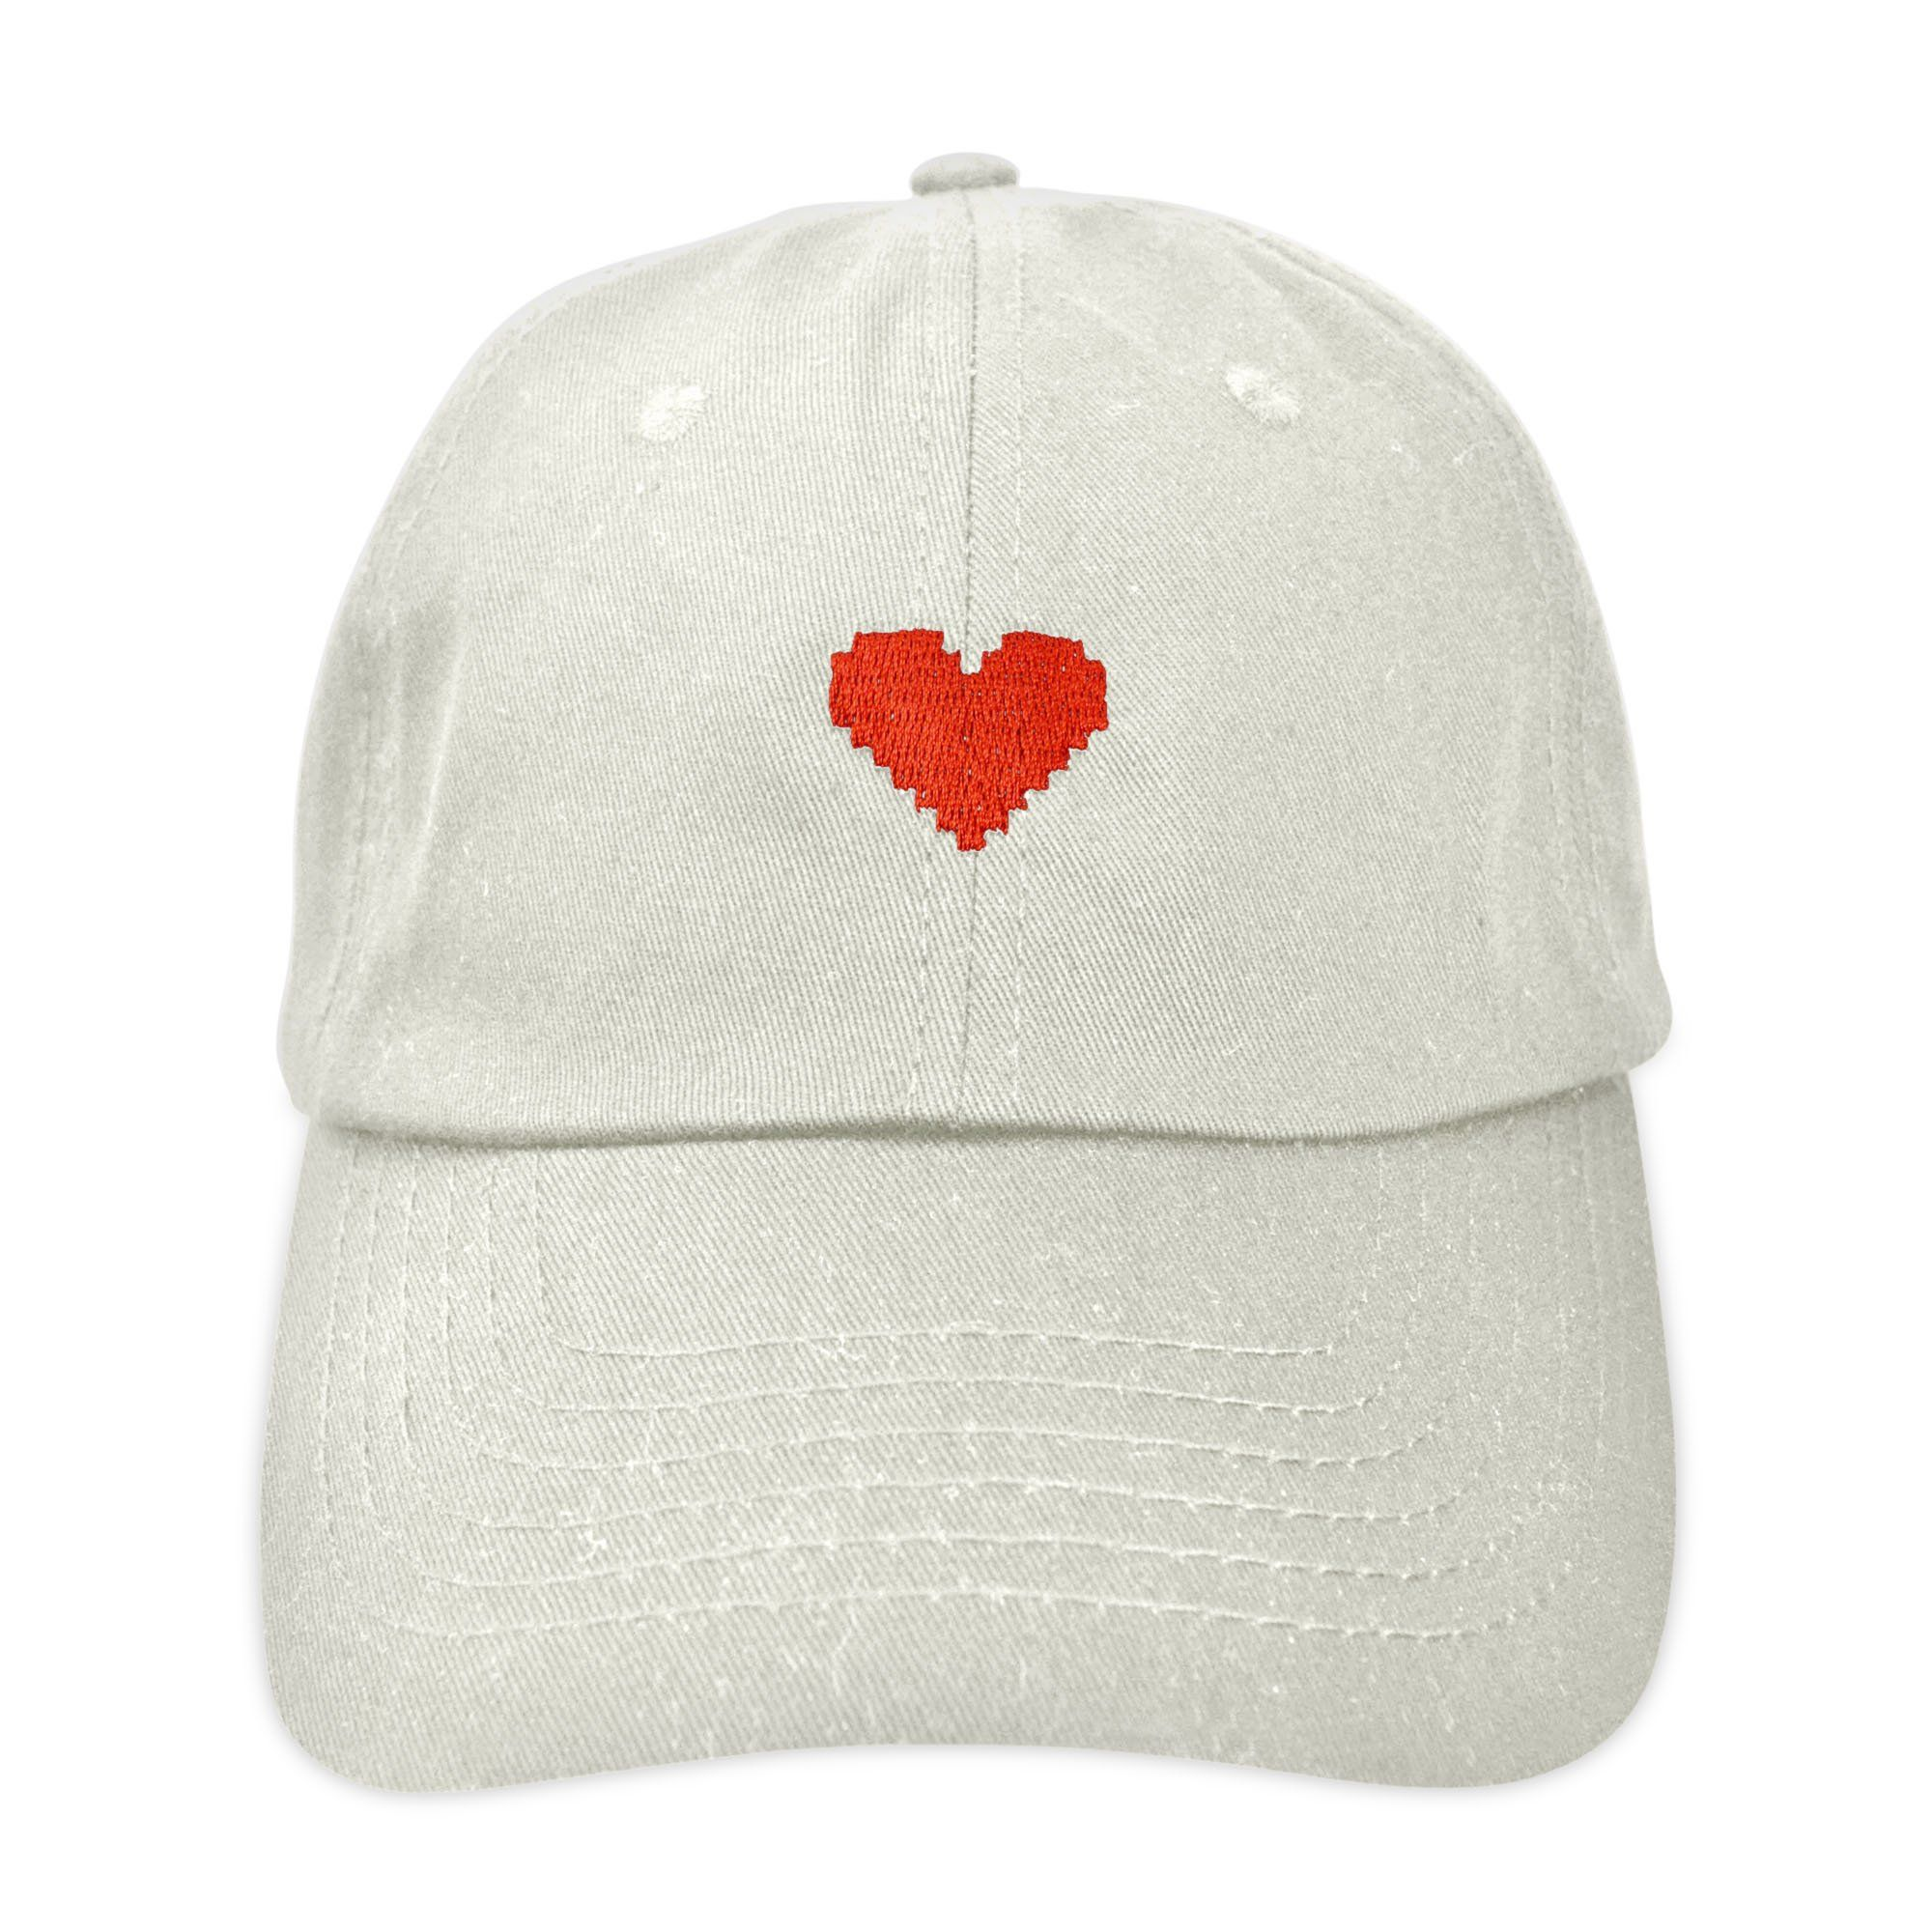 16f812d67c2 DALIX Pixel Heart Hat Womens Dad Hats Cotton Caps Embroidered Valentines